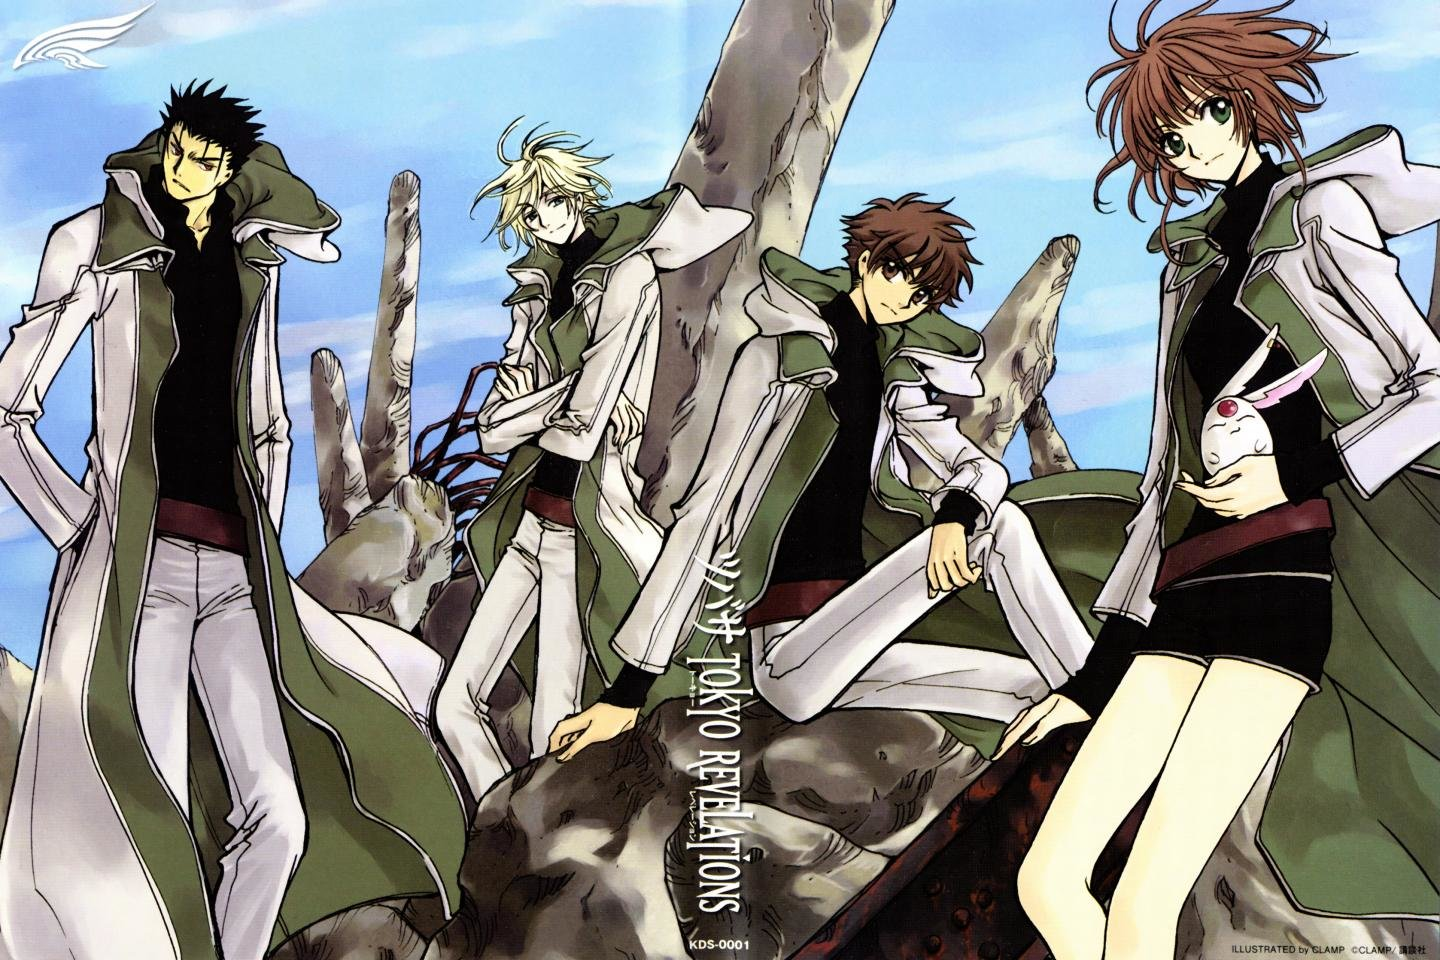 Download Hd 1440x960 Tsubasa Reservoir Chronicle Desktop